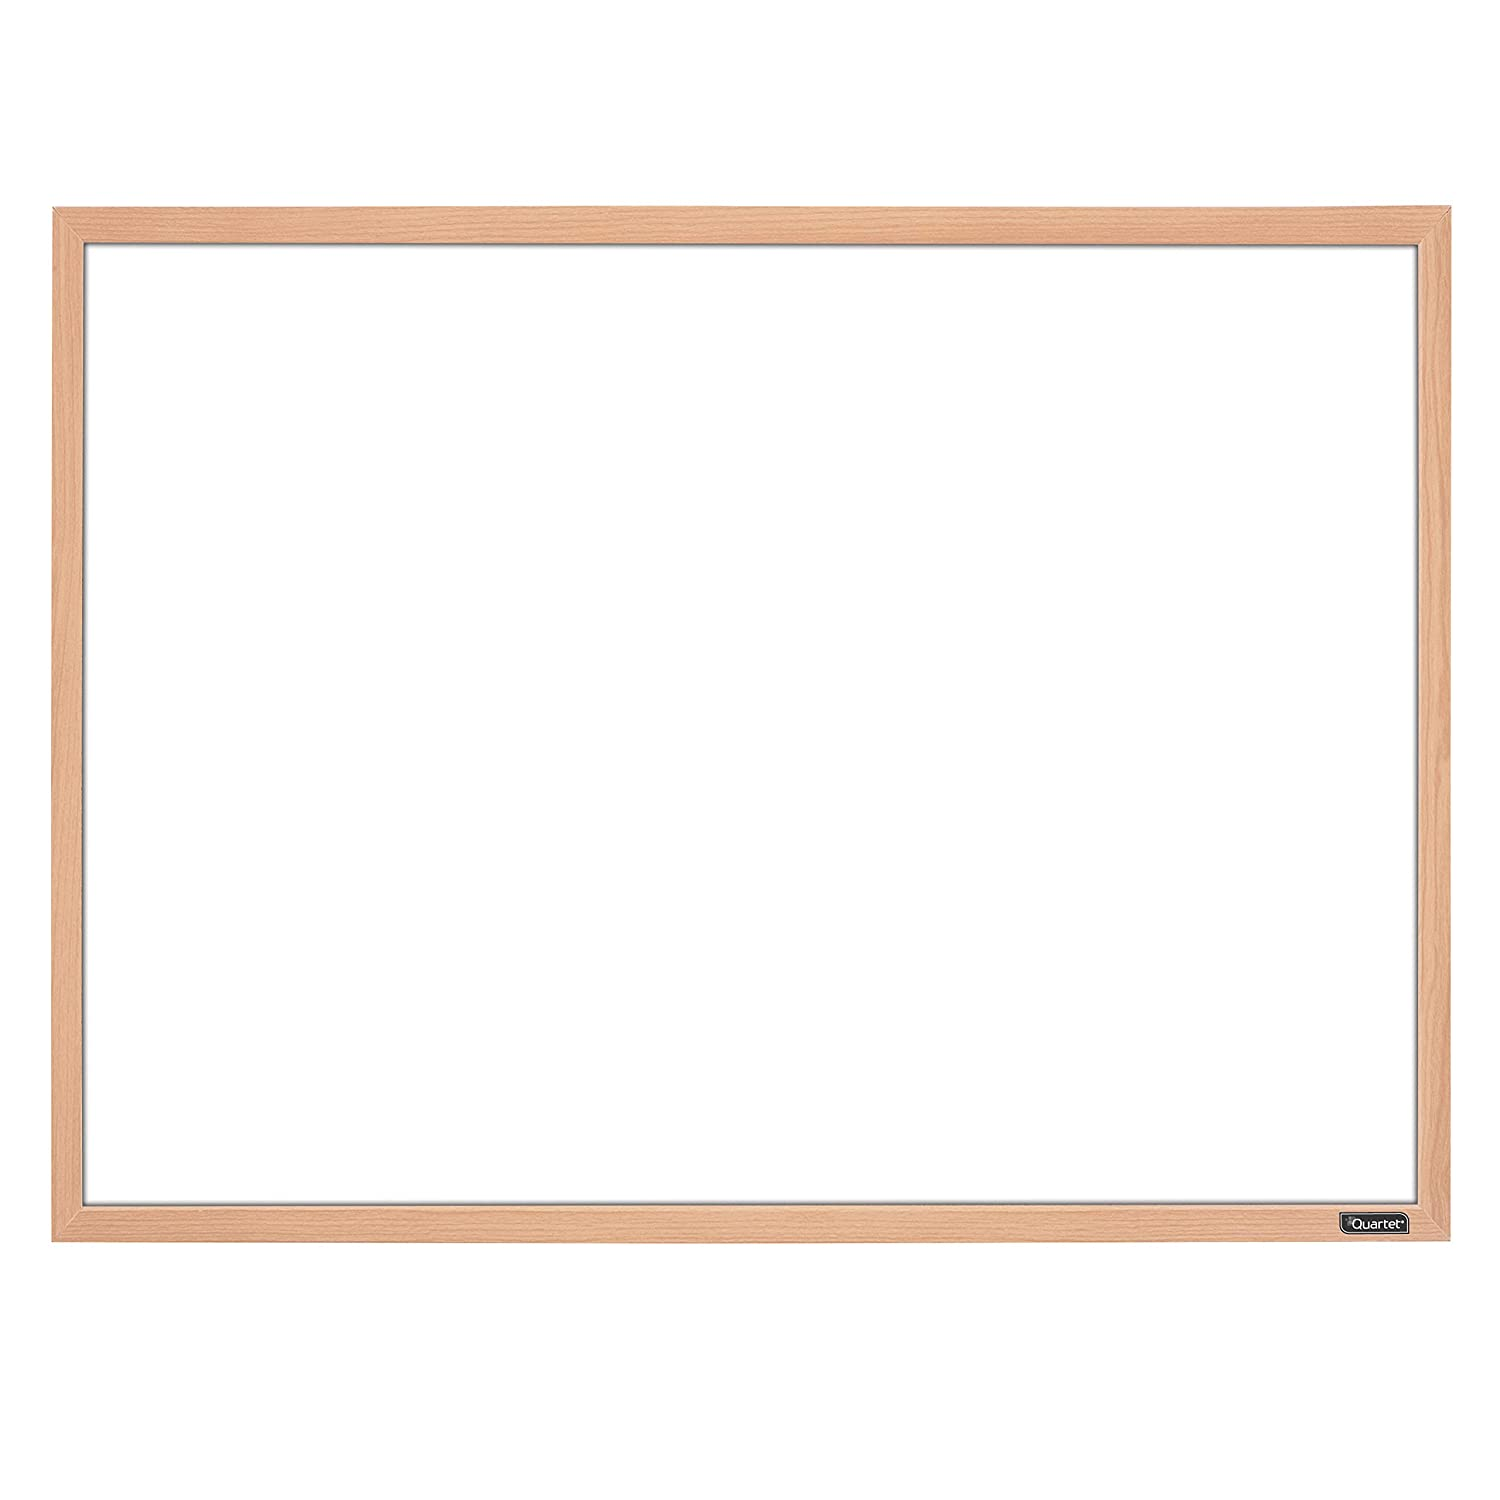 Quartet Economy Non-Magnetic Dry Erase Board, Wood Frame, 17 X 23 Inches (35-380372Q)